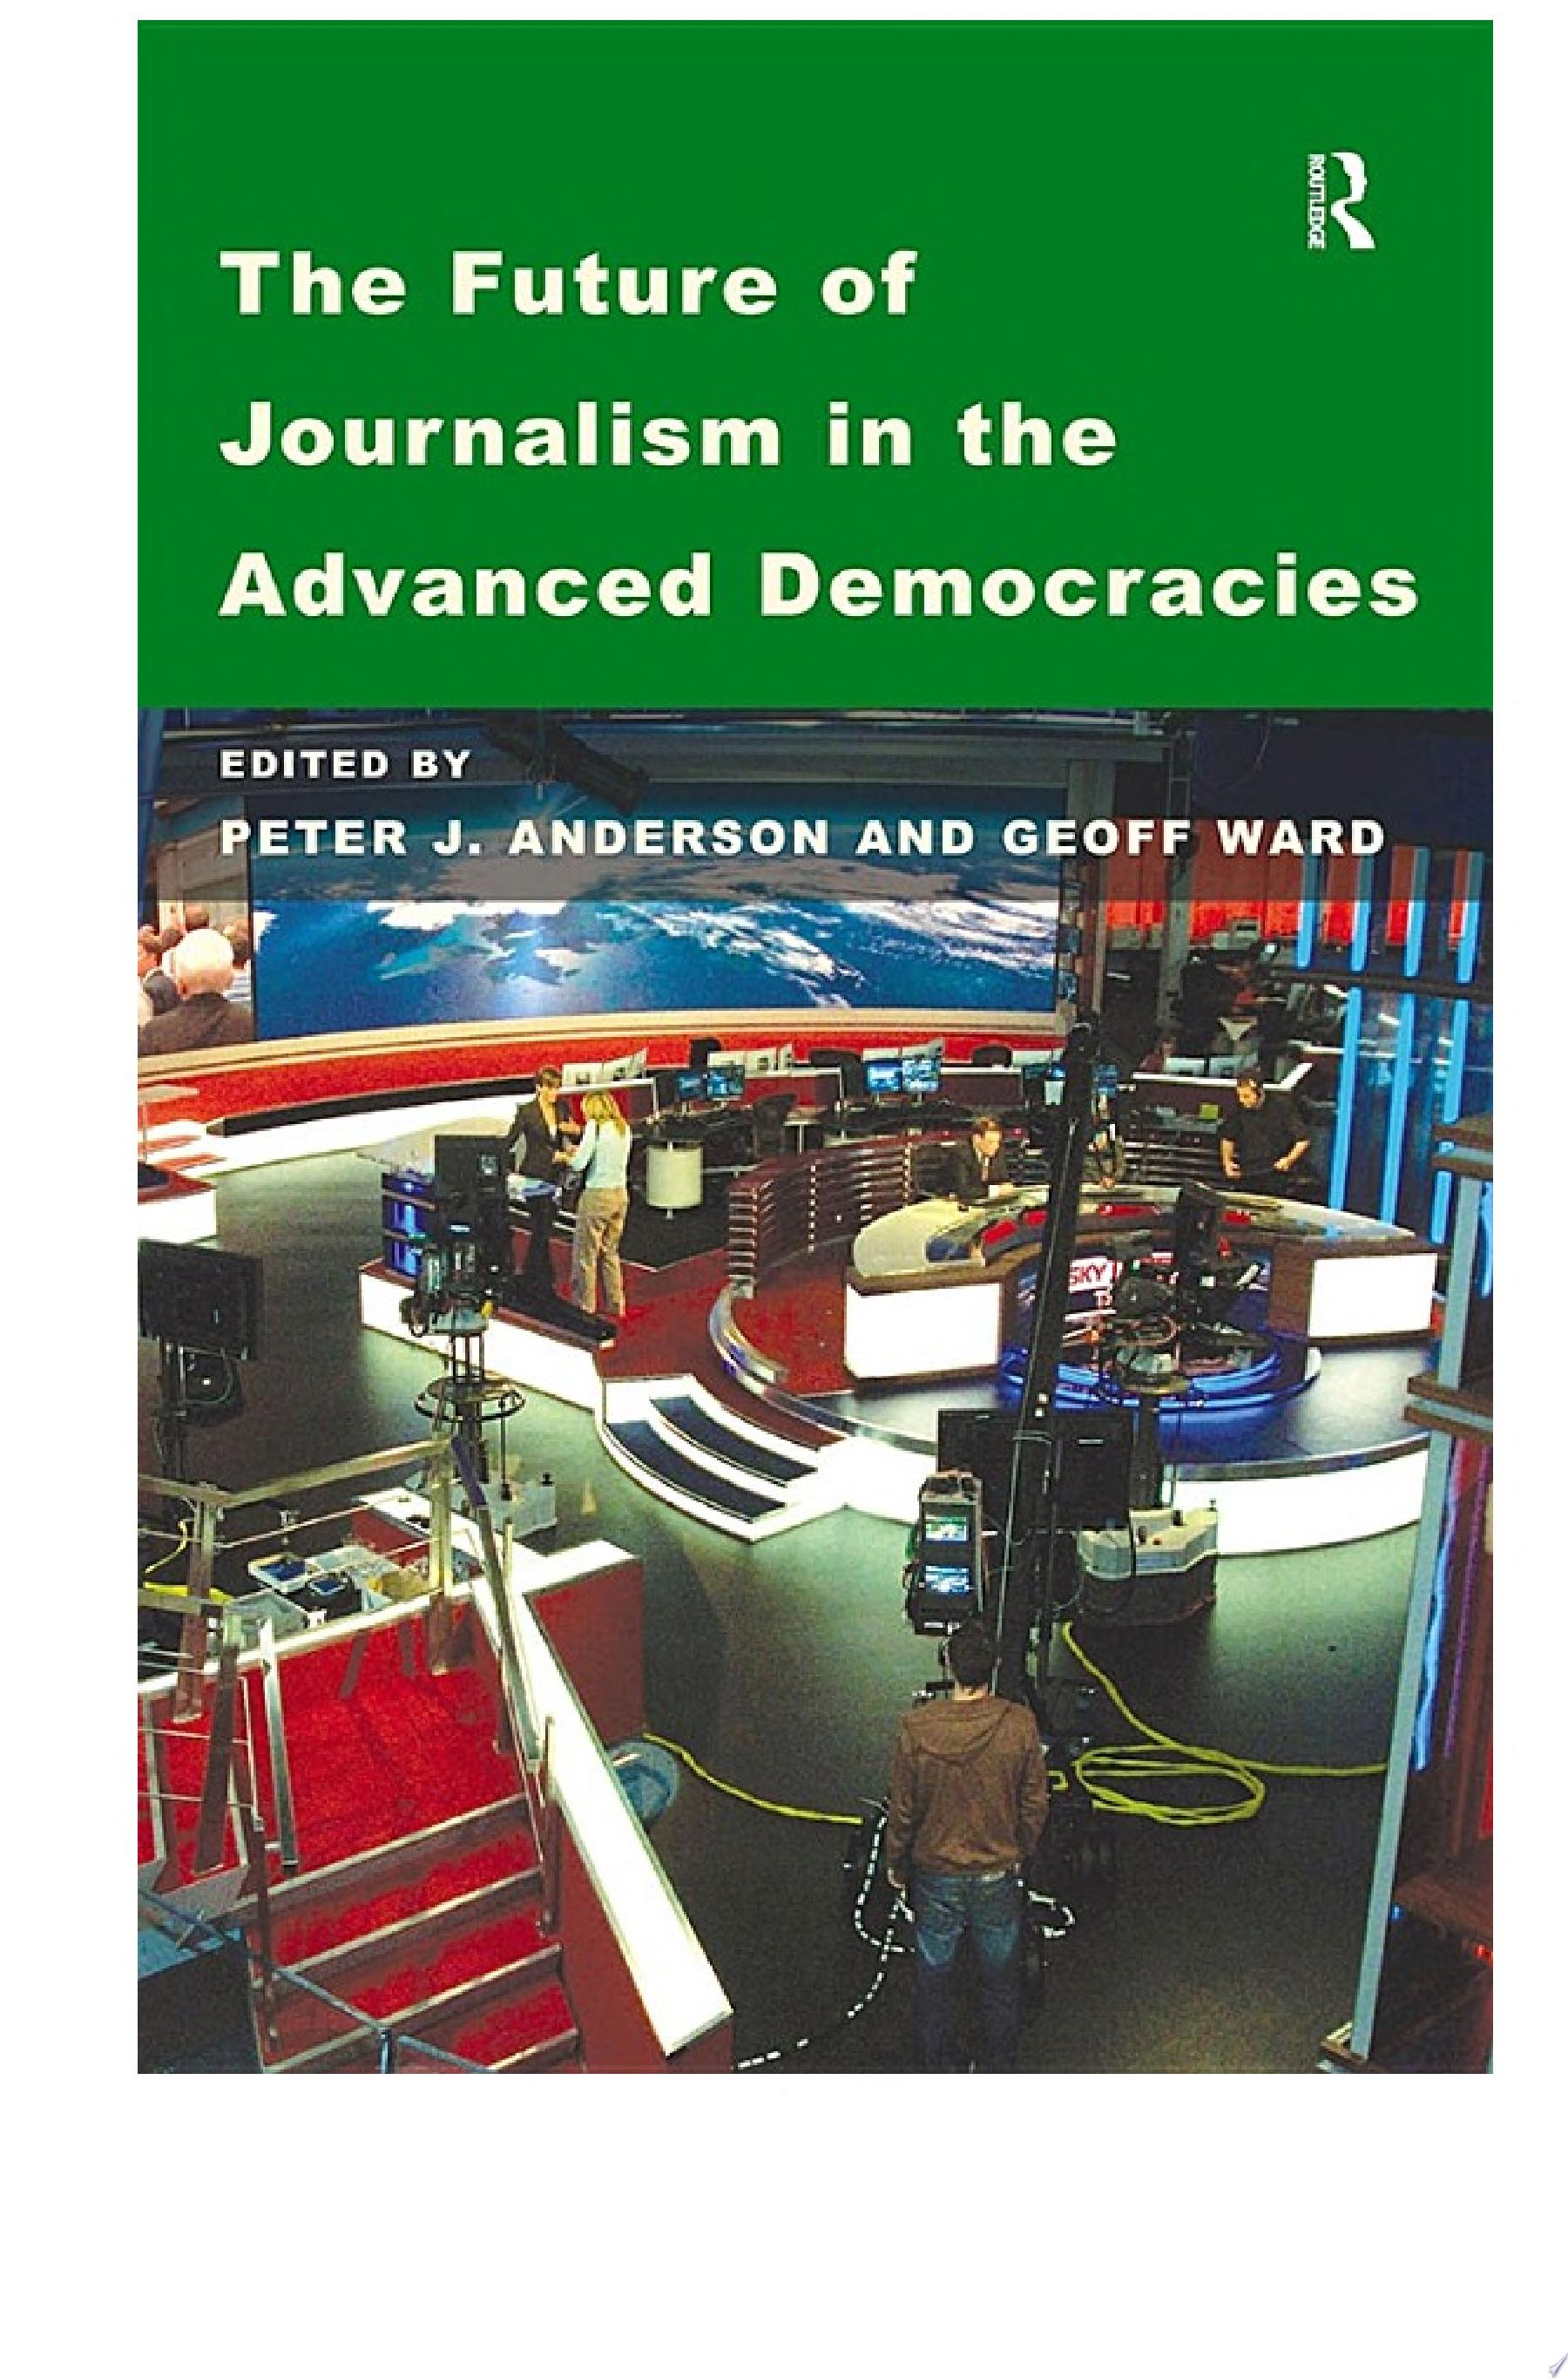 The Future of Journalism in the Advanced Democracies